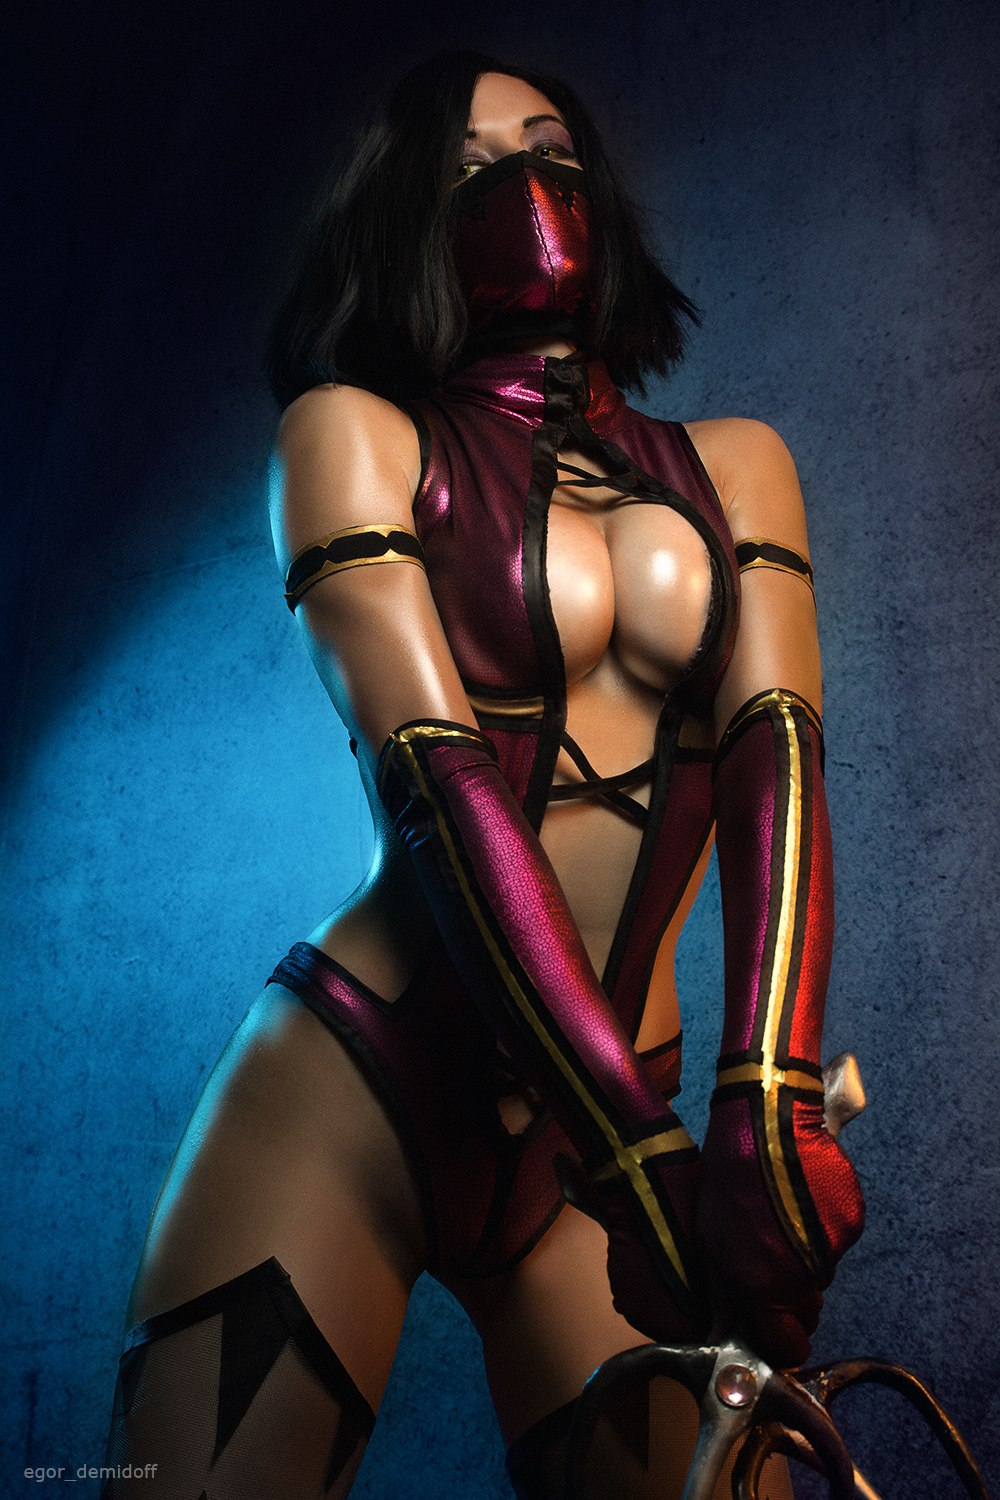 from Felipe mortal kombat girls sex topless